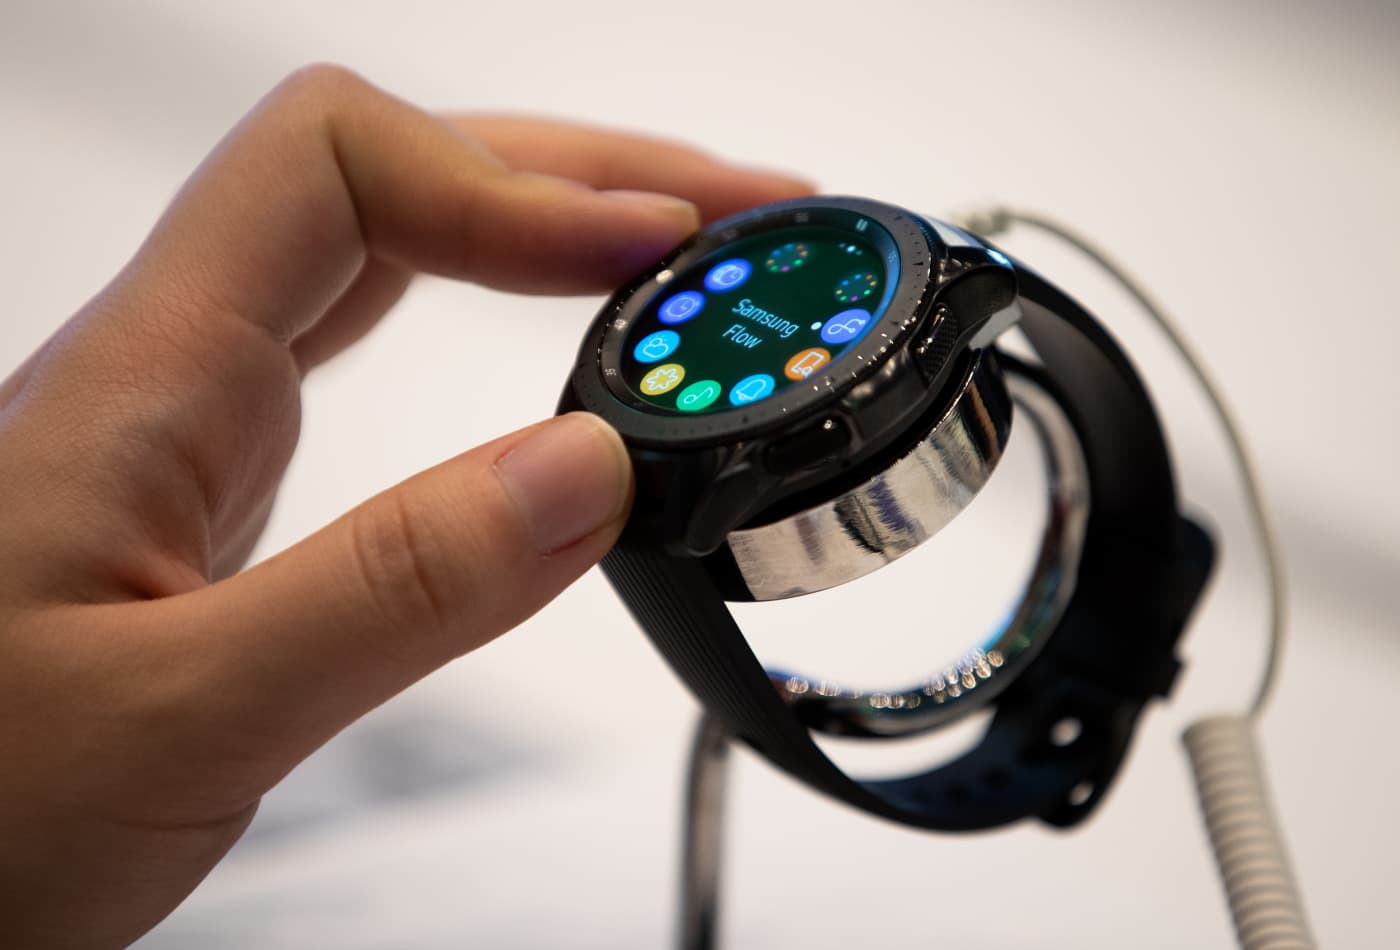 Wearable device sales have jumped more than 30% this year, exec says